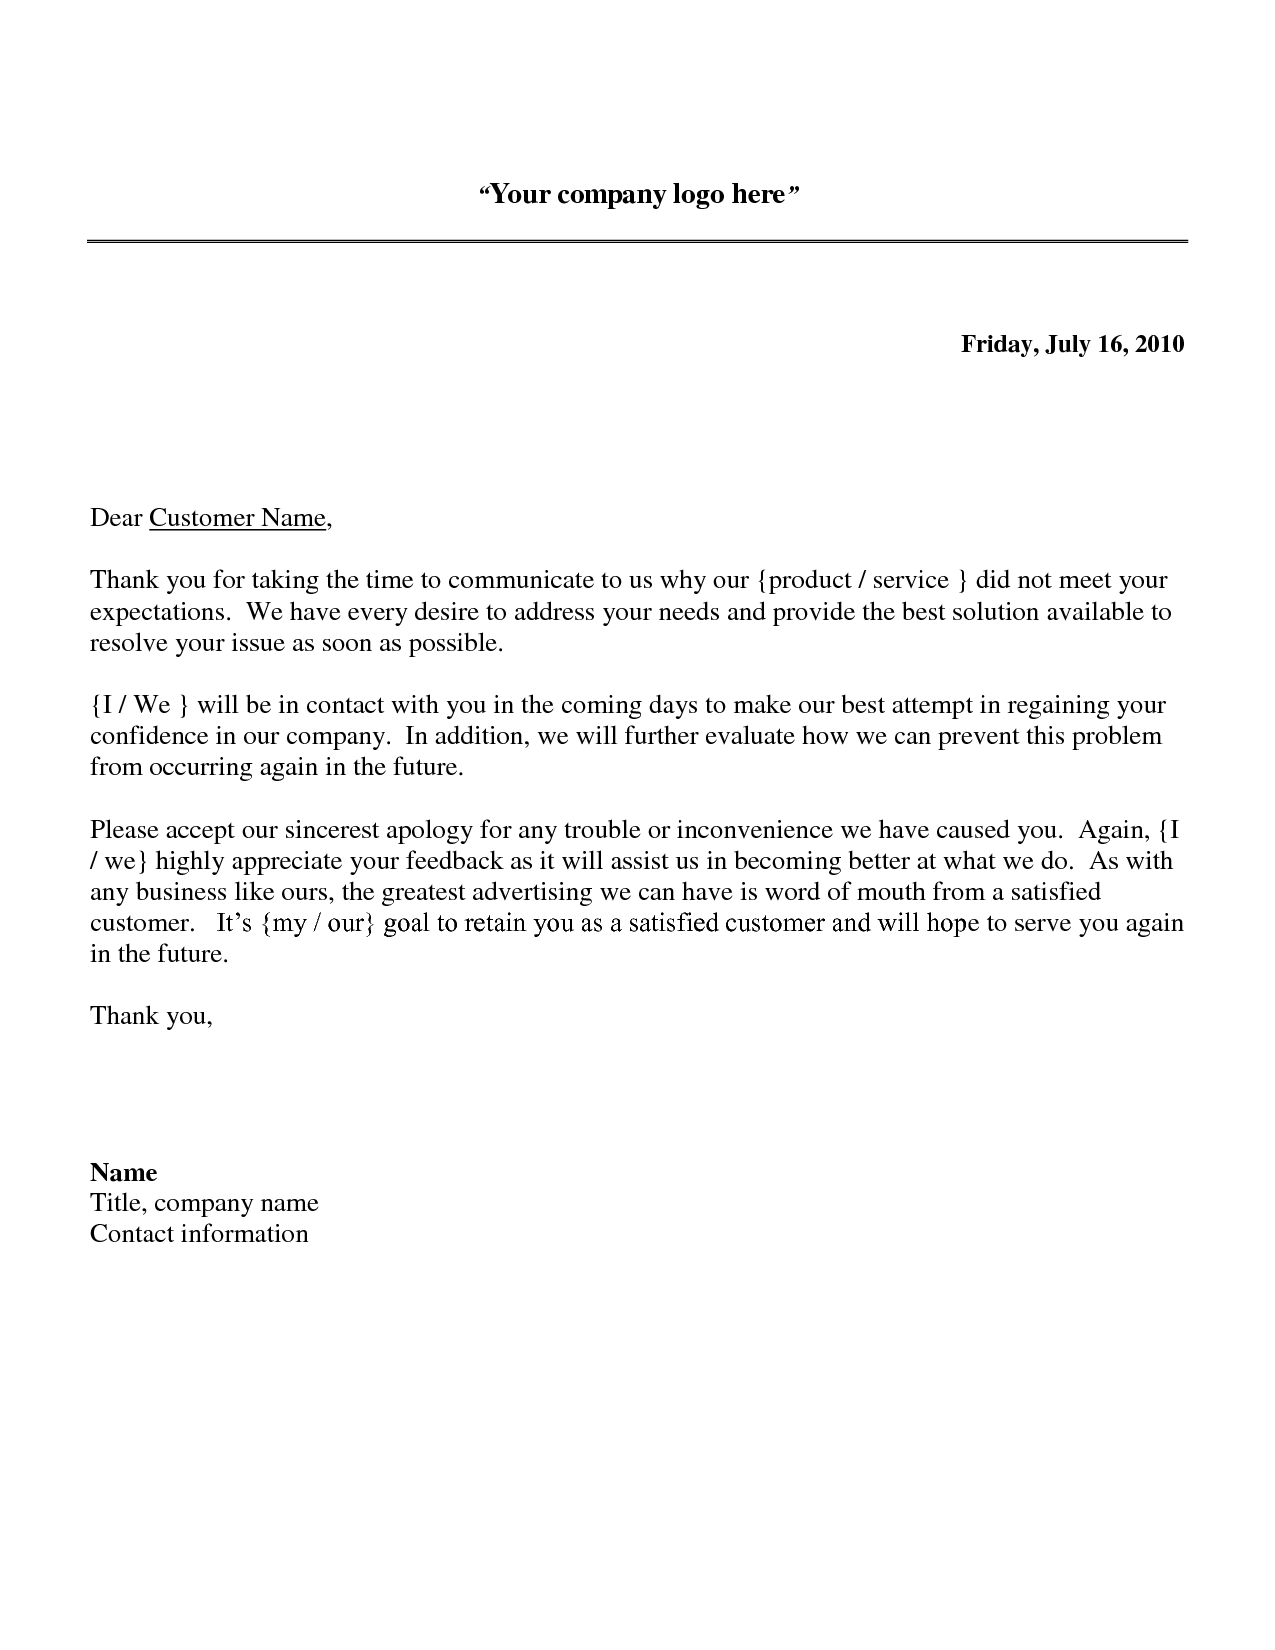 Business apology letter sample download as doc images frompoletter business apology letter sample download as doc images frompoletter of apology business letter sample spiritdancerdesigns Gallery